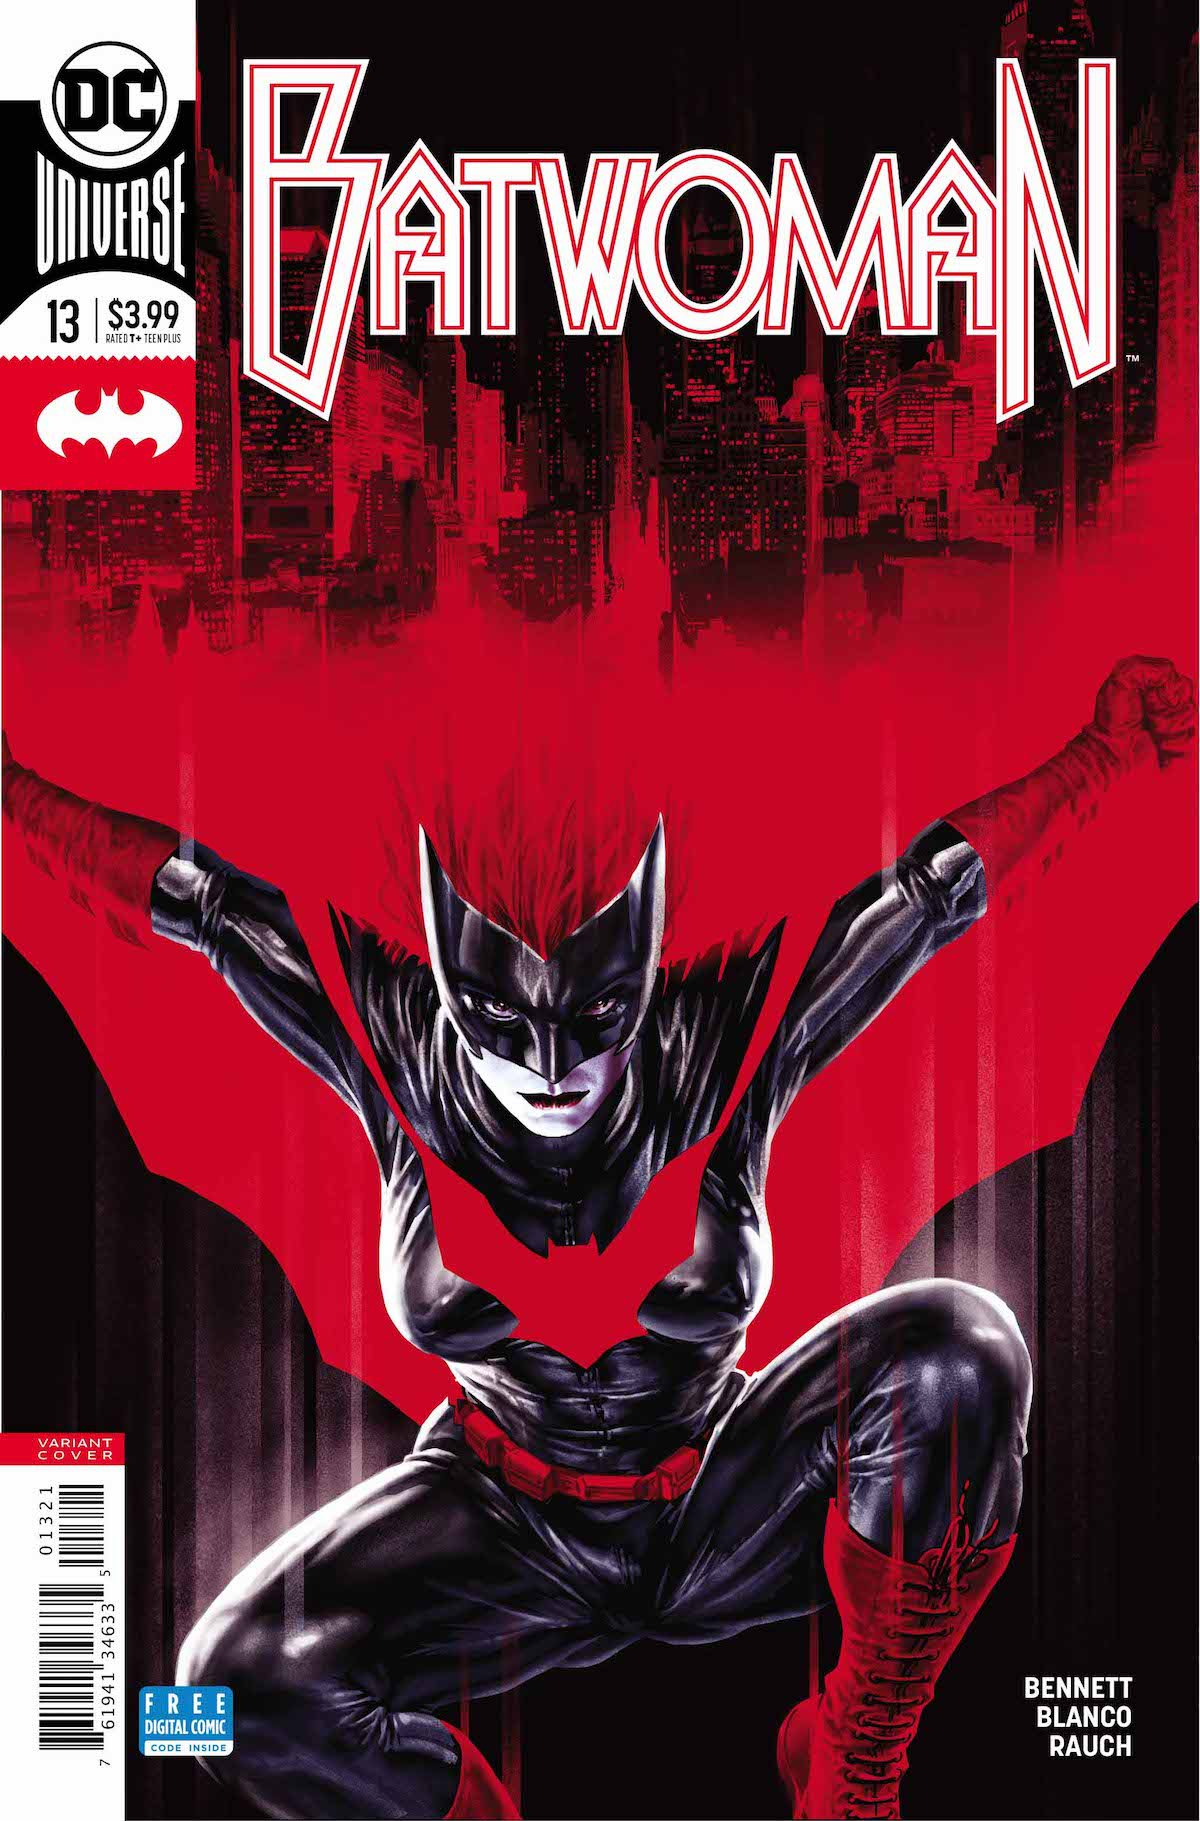 Batwoman #13 variant cover